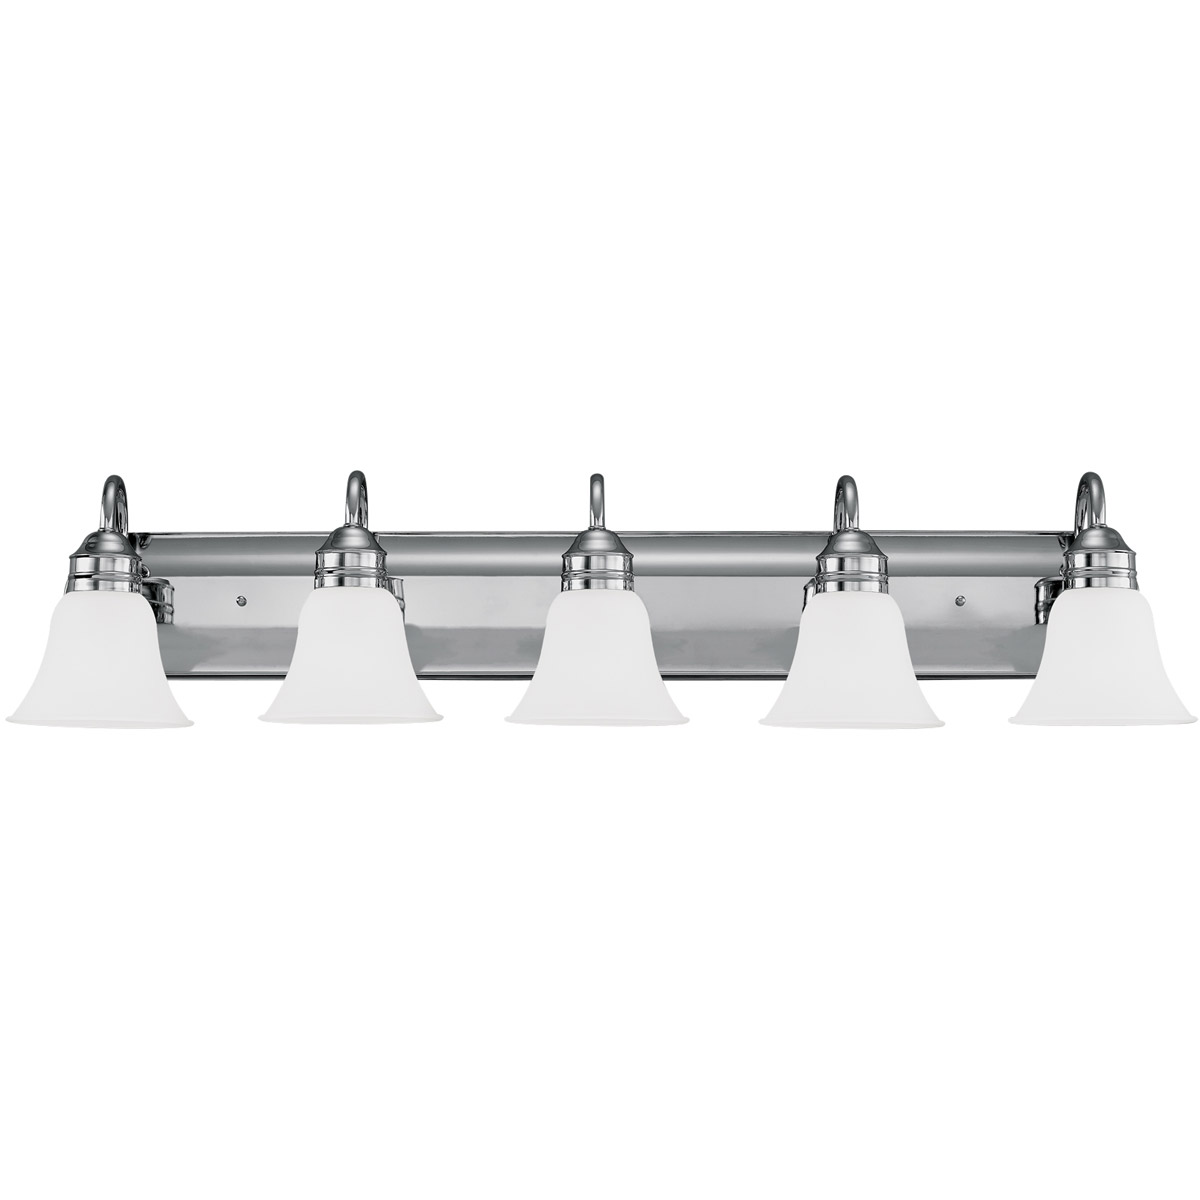 Sea Gull Lighting Gladstone 5 Light Bath Vanity in Chrome 44854-05